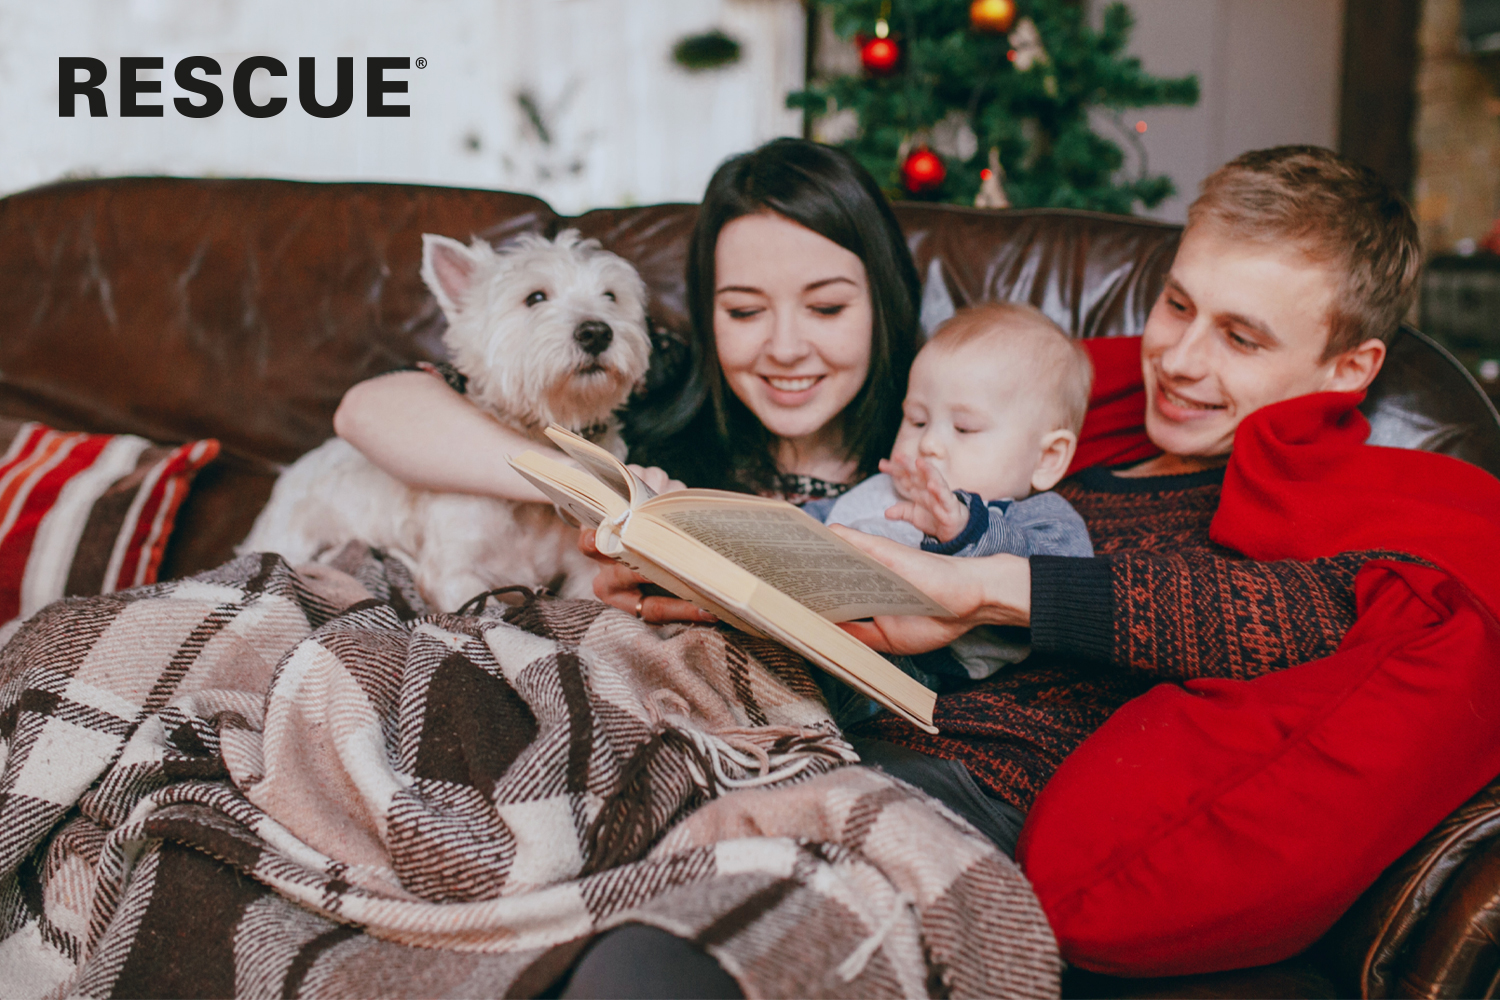 rescue_baby_Christmas_01